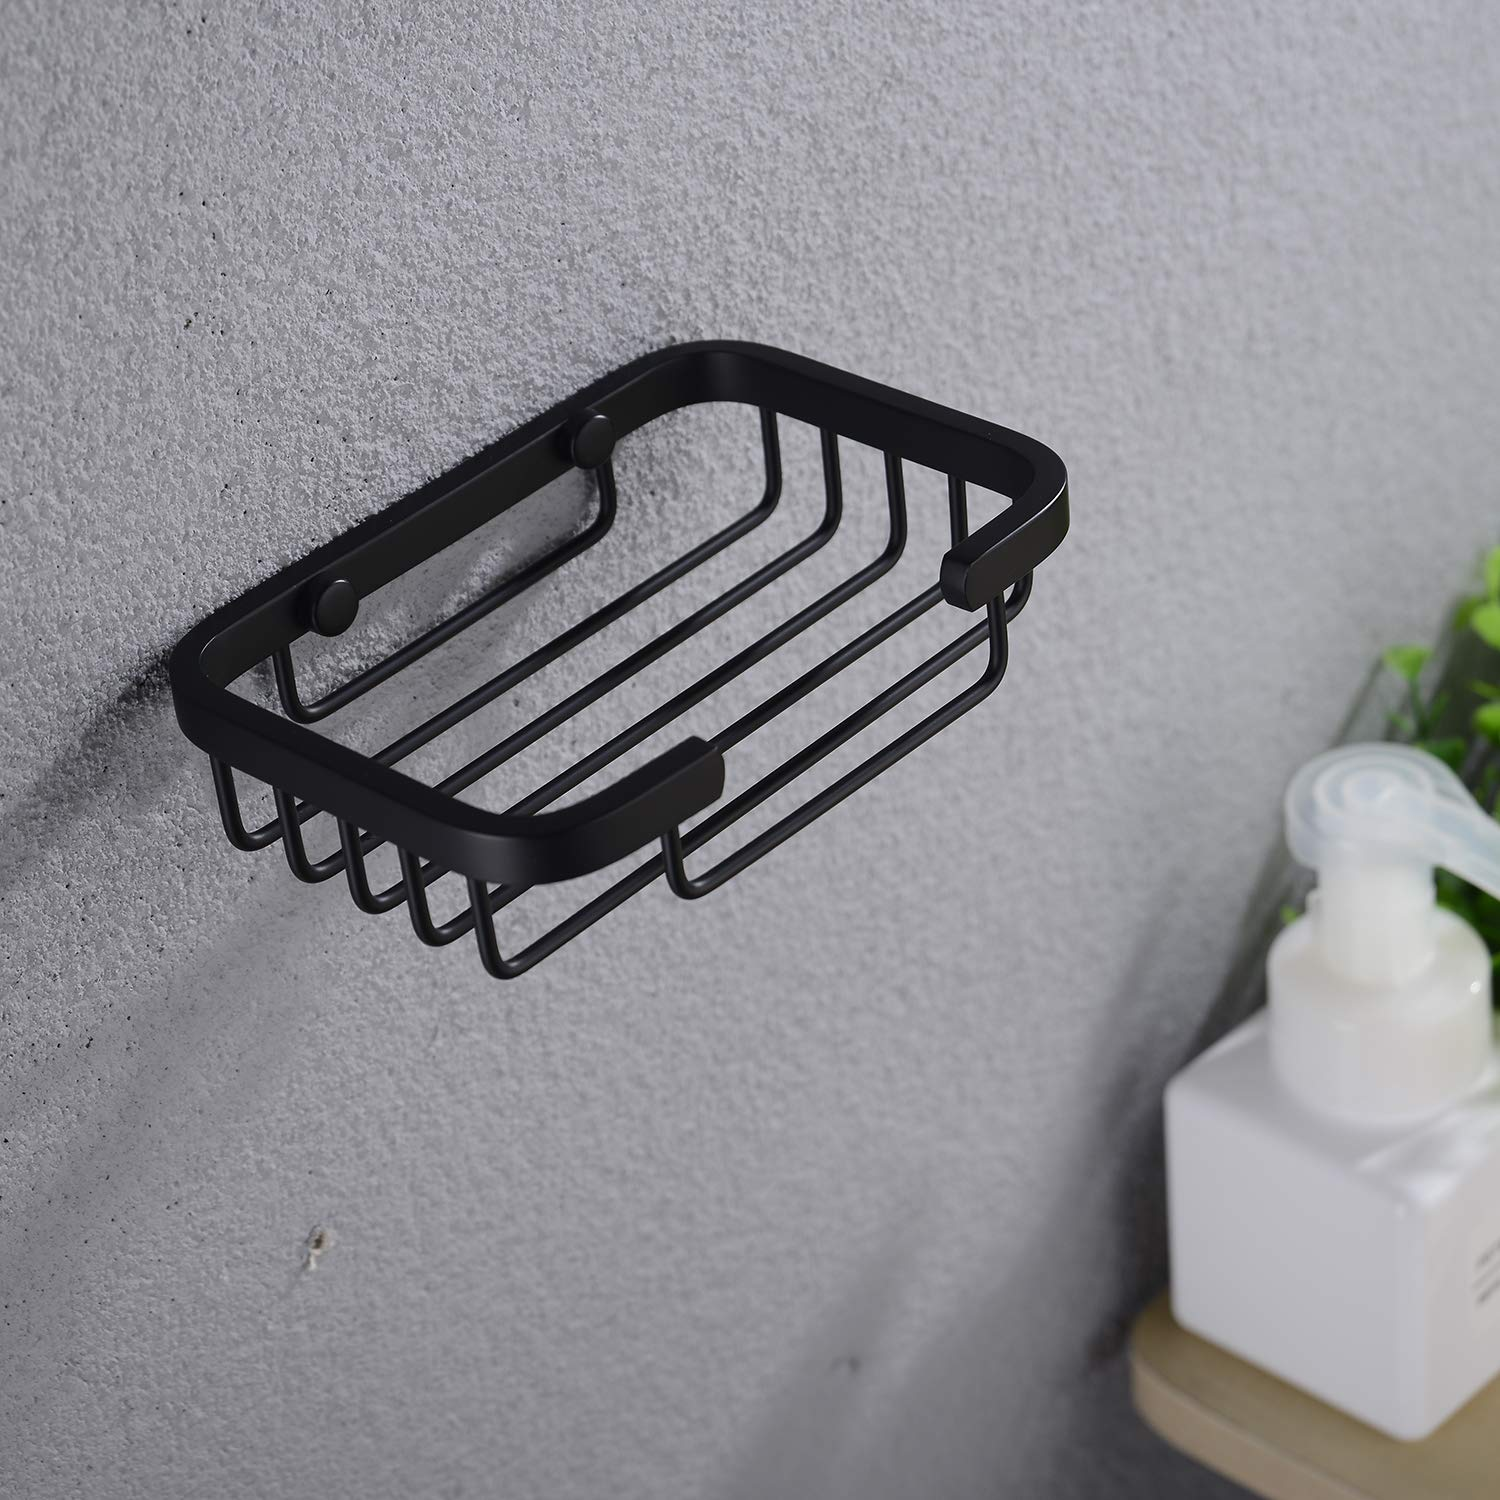 SUS304 Stainless Steel Soap Holder Sponge Shelf Basket Shower Caddy Storage for Bathroom Kitchen Rustproof Matt Black Nicmondo Wall Mounted Soap Dish